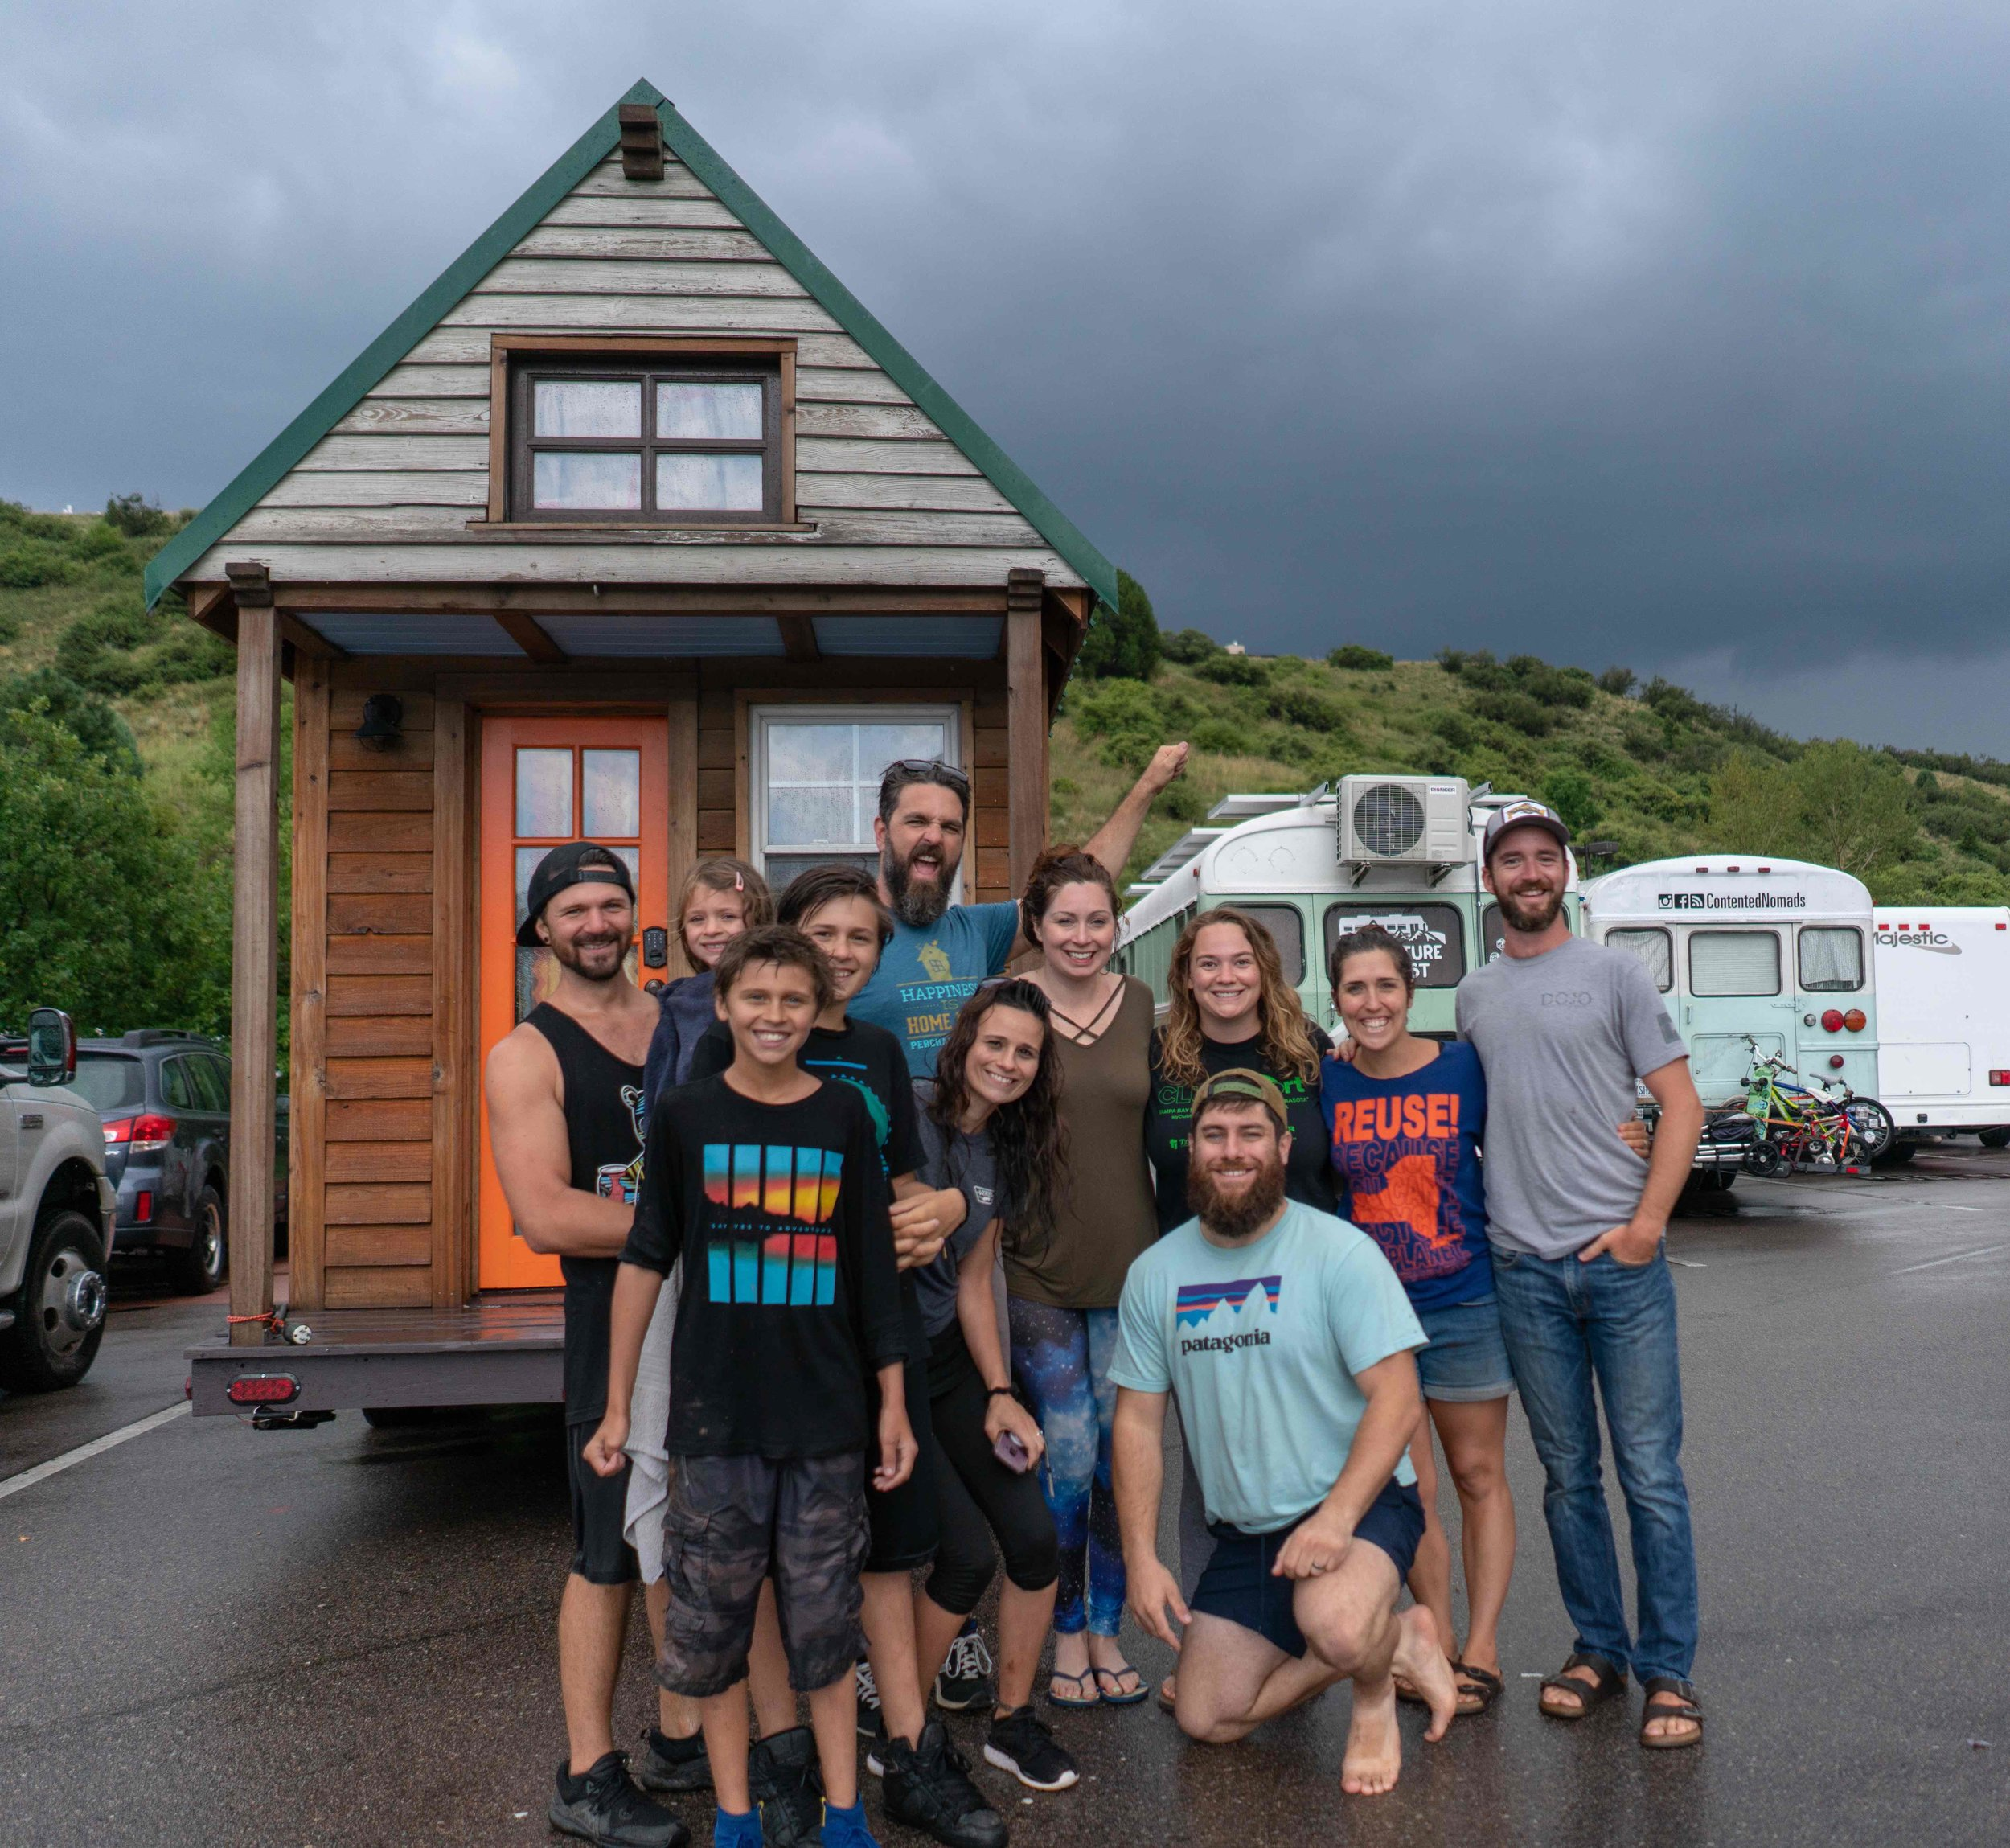 We met Jimmy & Tara and their kids, new full-time RVers, while parked at the Bass Pro Shop with some of our skoolie friends. This was taken after surviving a rain/hail storm at the Garden of the Gods Park with the Contented Nomads bus family and the Adventure or Bust couple.